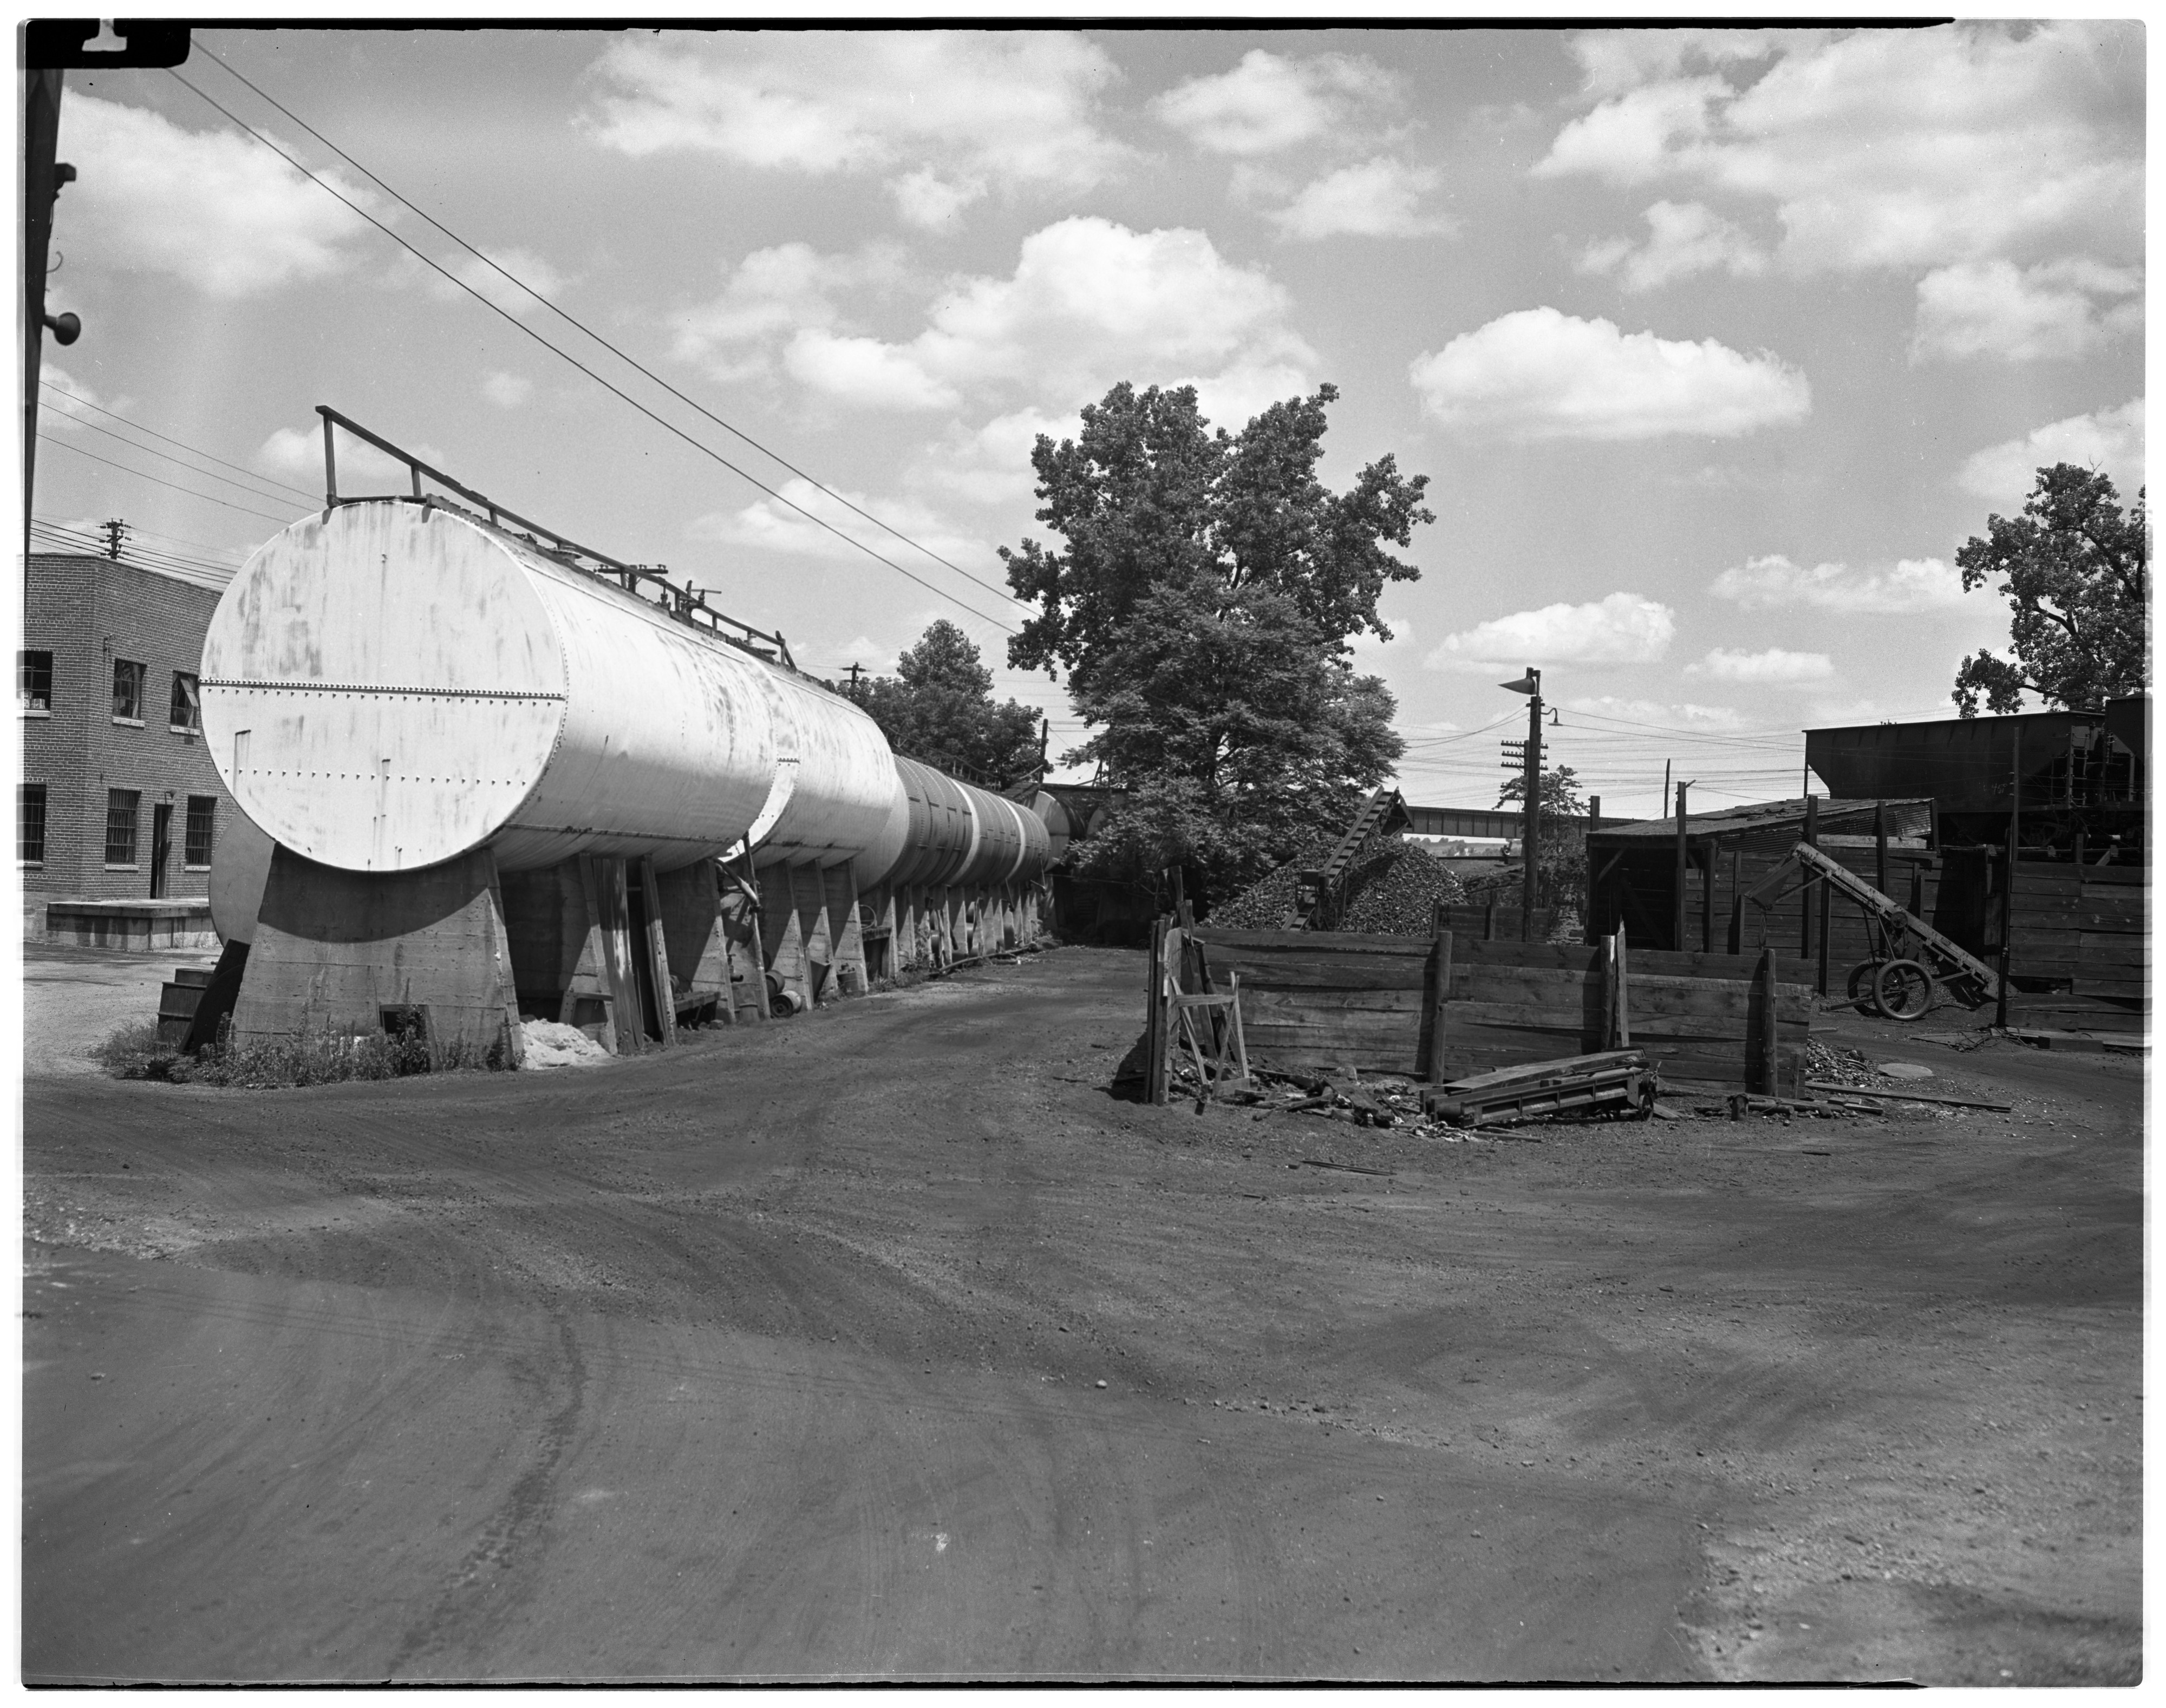 Oil Storage Tanks at Staebler-Kempf's New Headquarters, 912 N Main,  July 1946 image